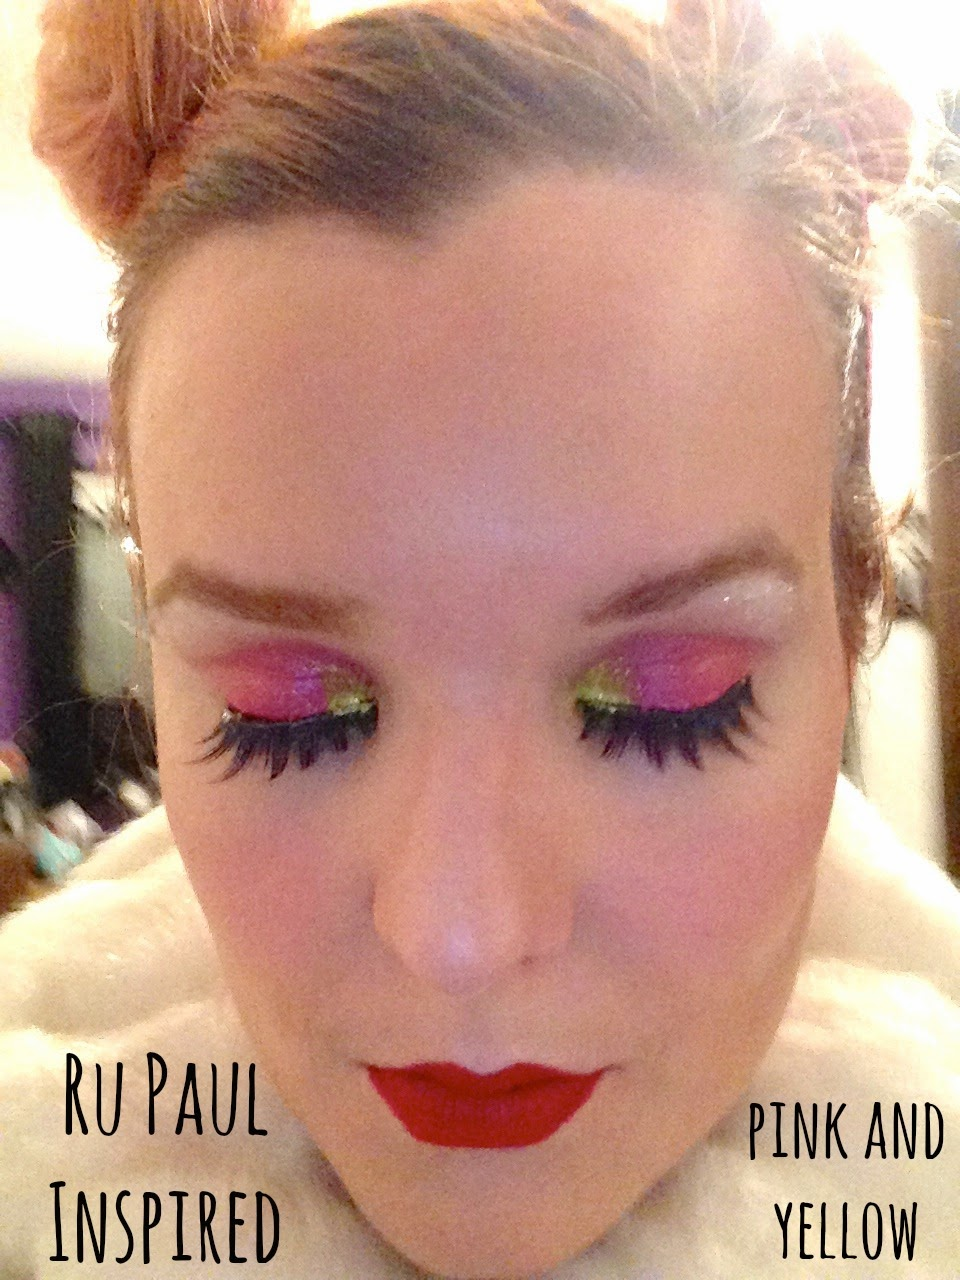 Ru Paul Inspired Pink and Yellow Make Up